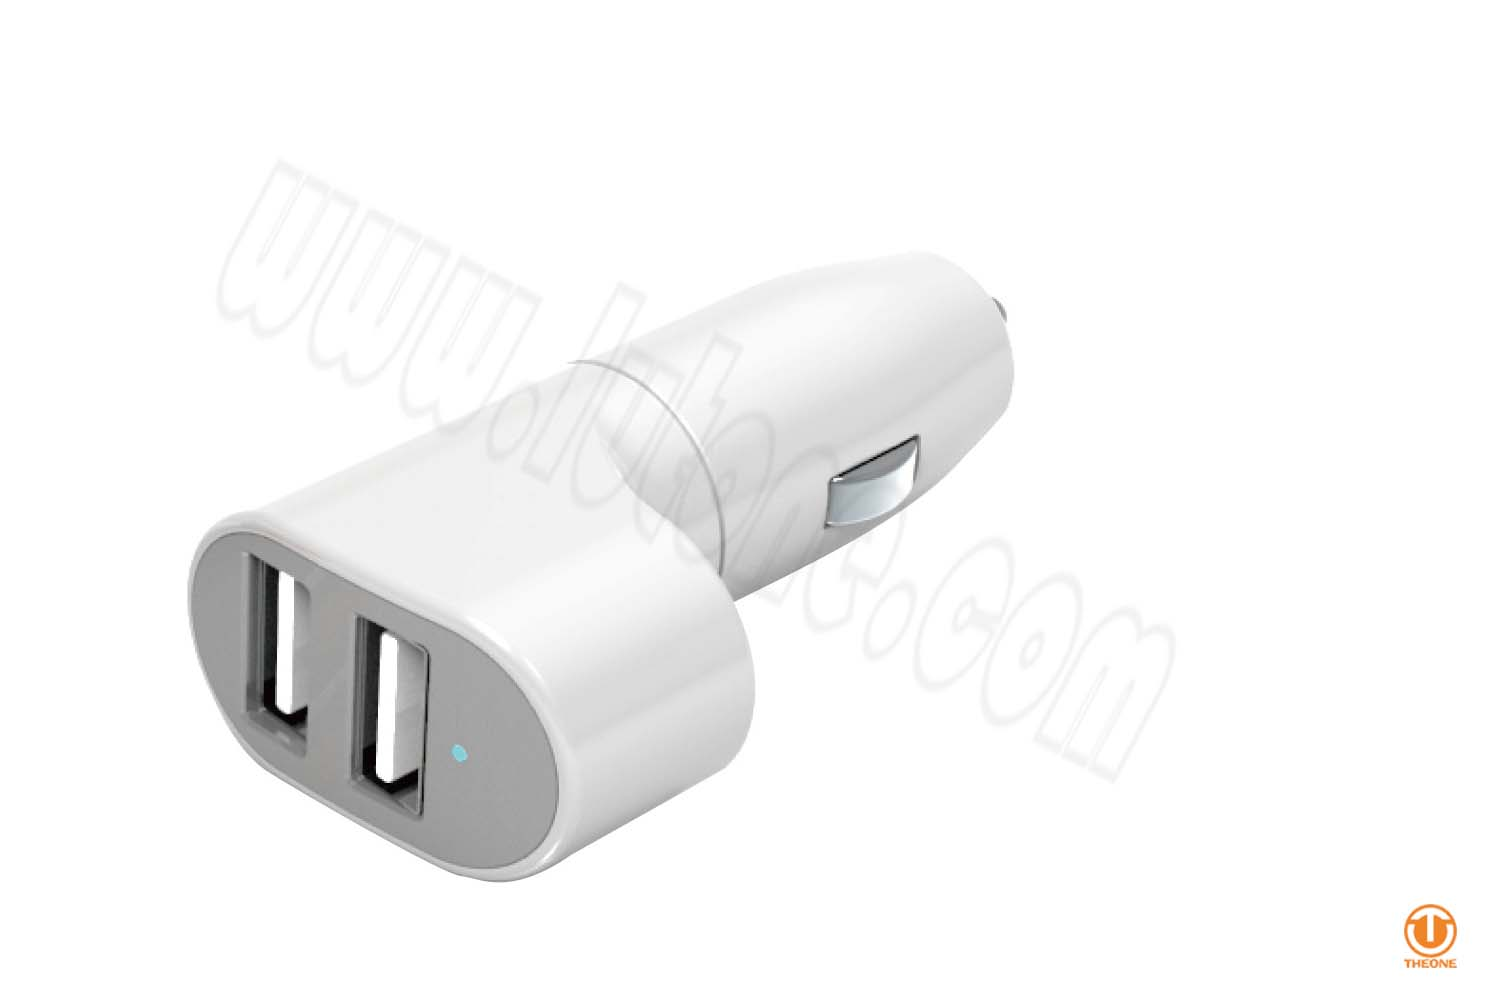 tc03a2-1 dual ports car charger